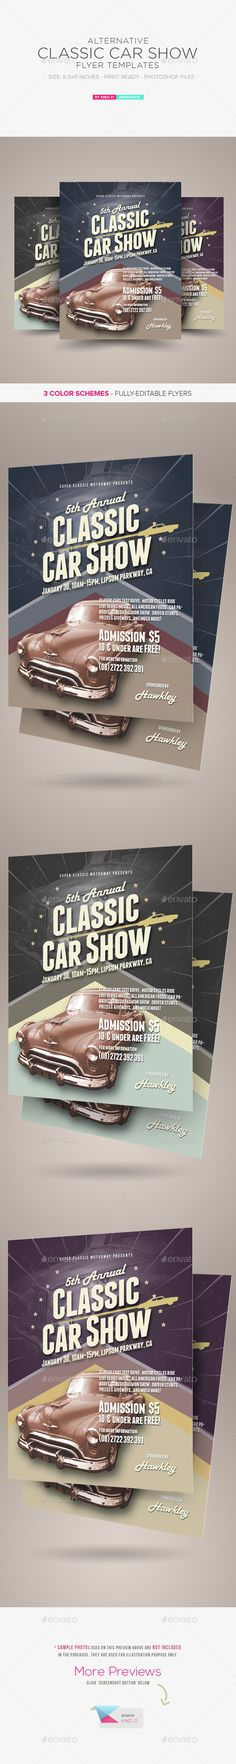 Alternative Classic Car Show Flyers